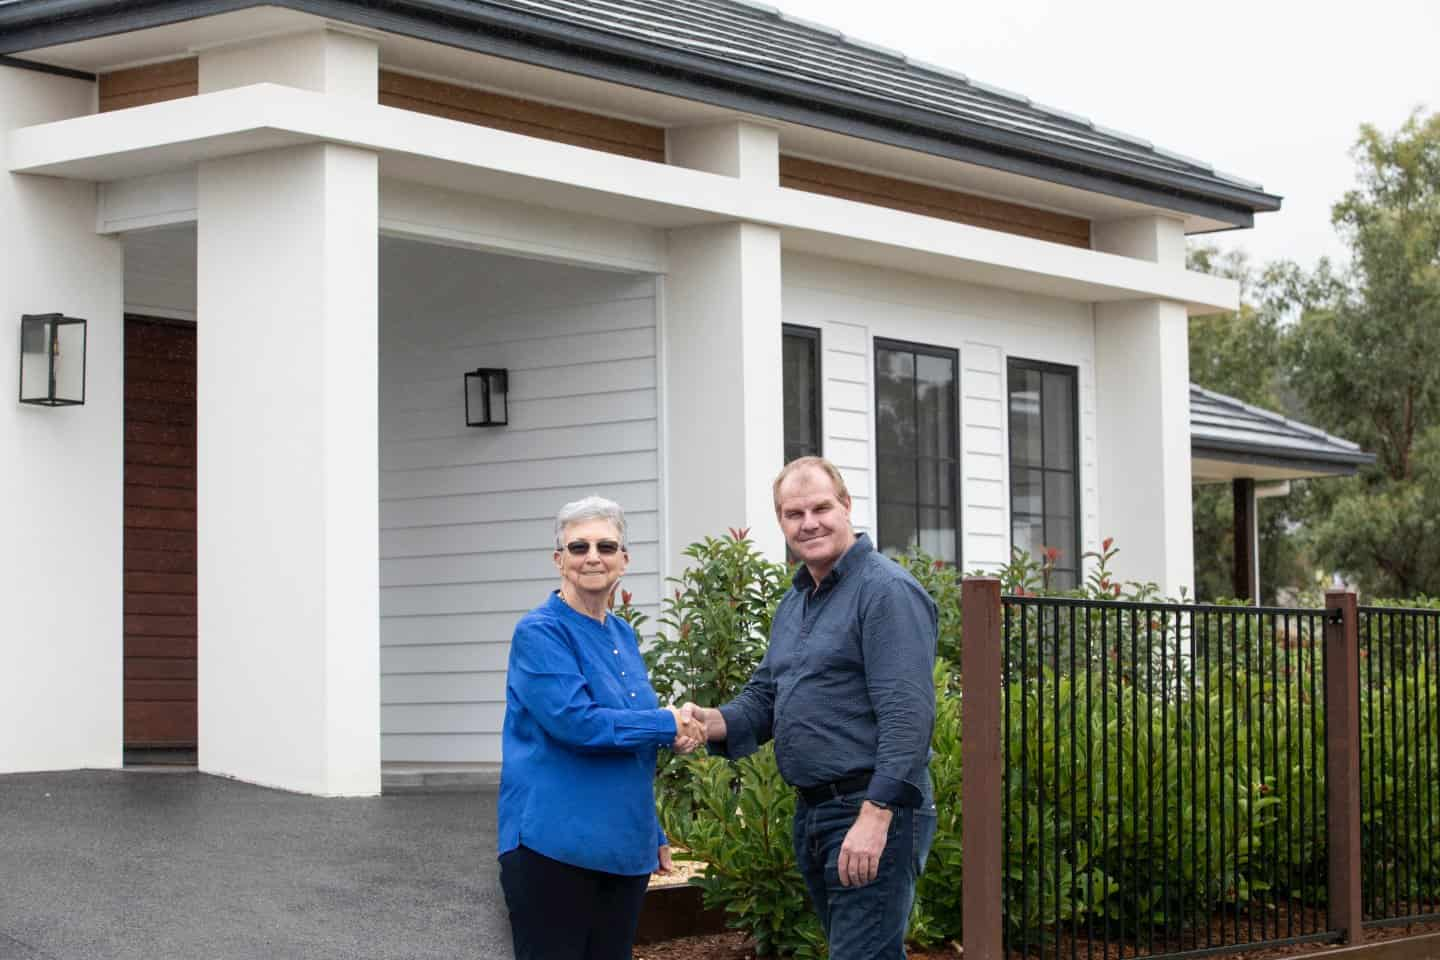 image of Gayle Copeland, owner of Home Funders Australia, shaking hands with a happy client